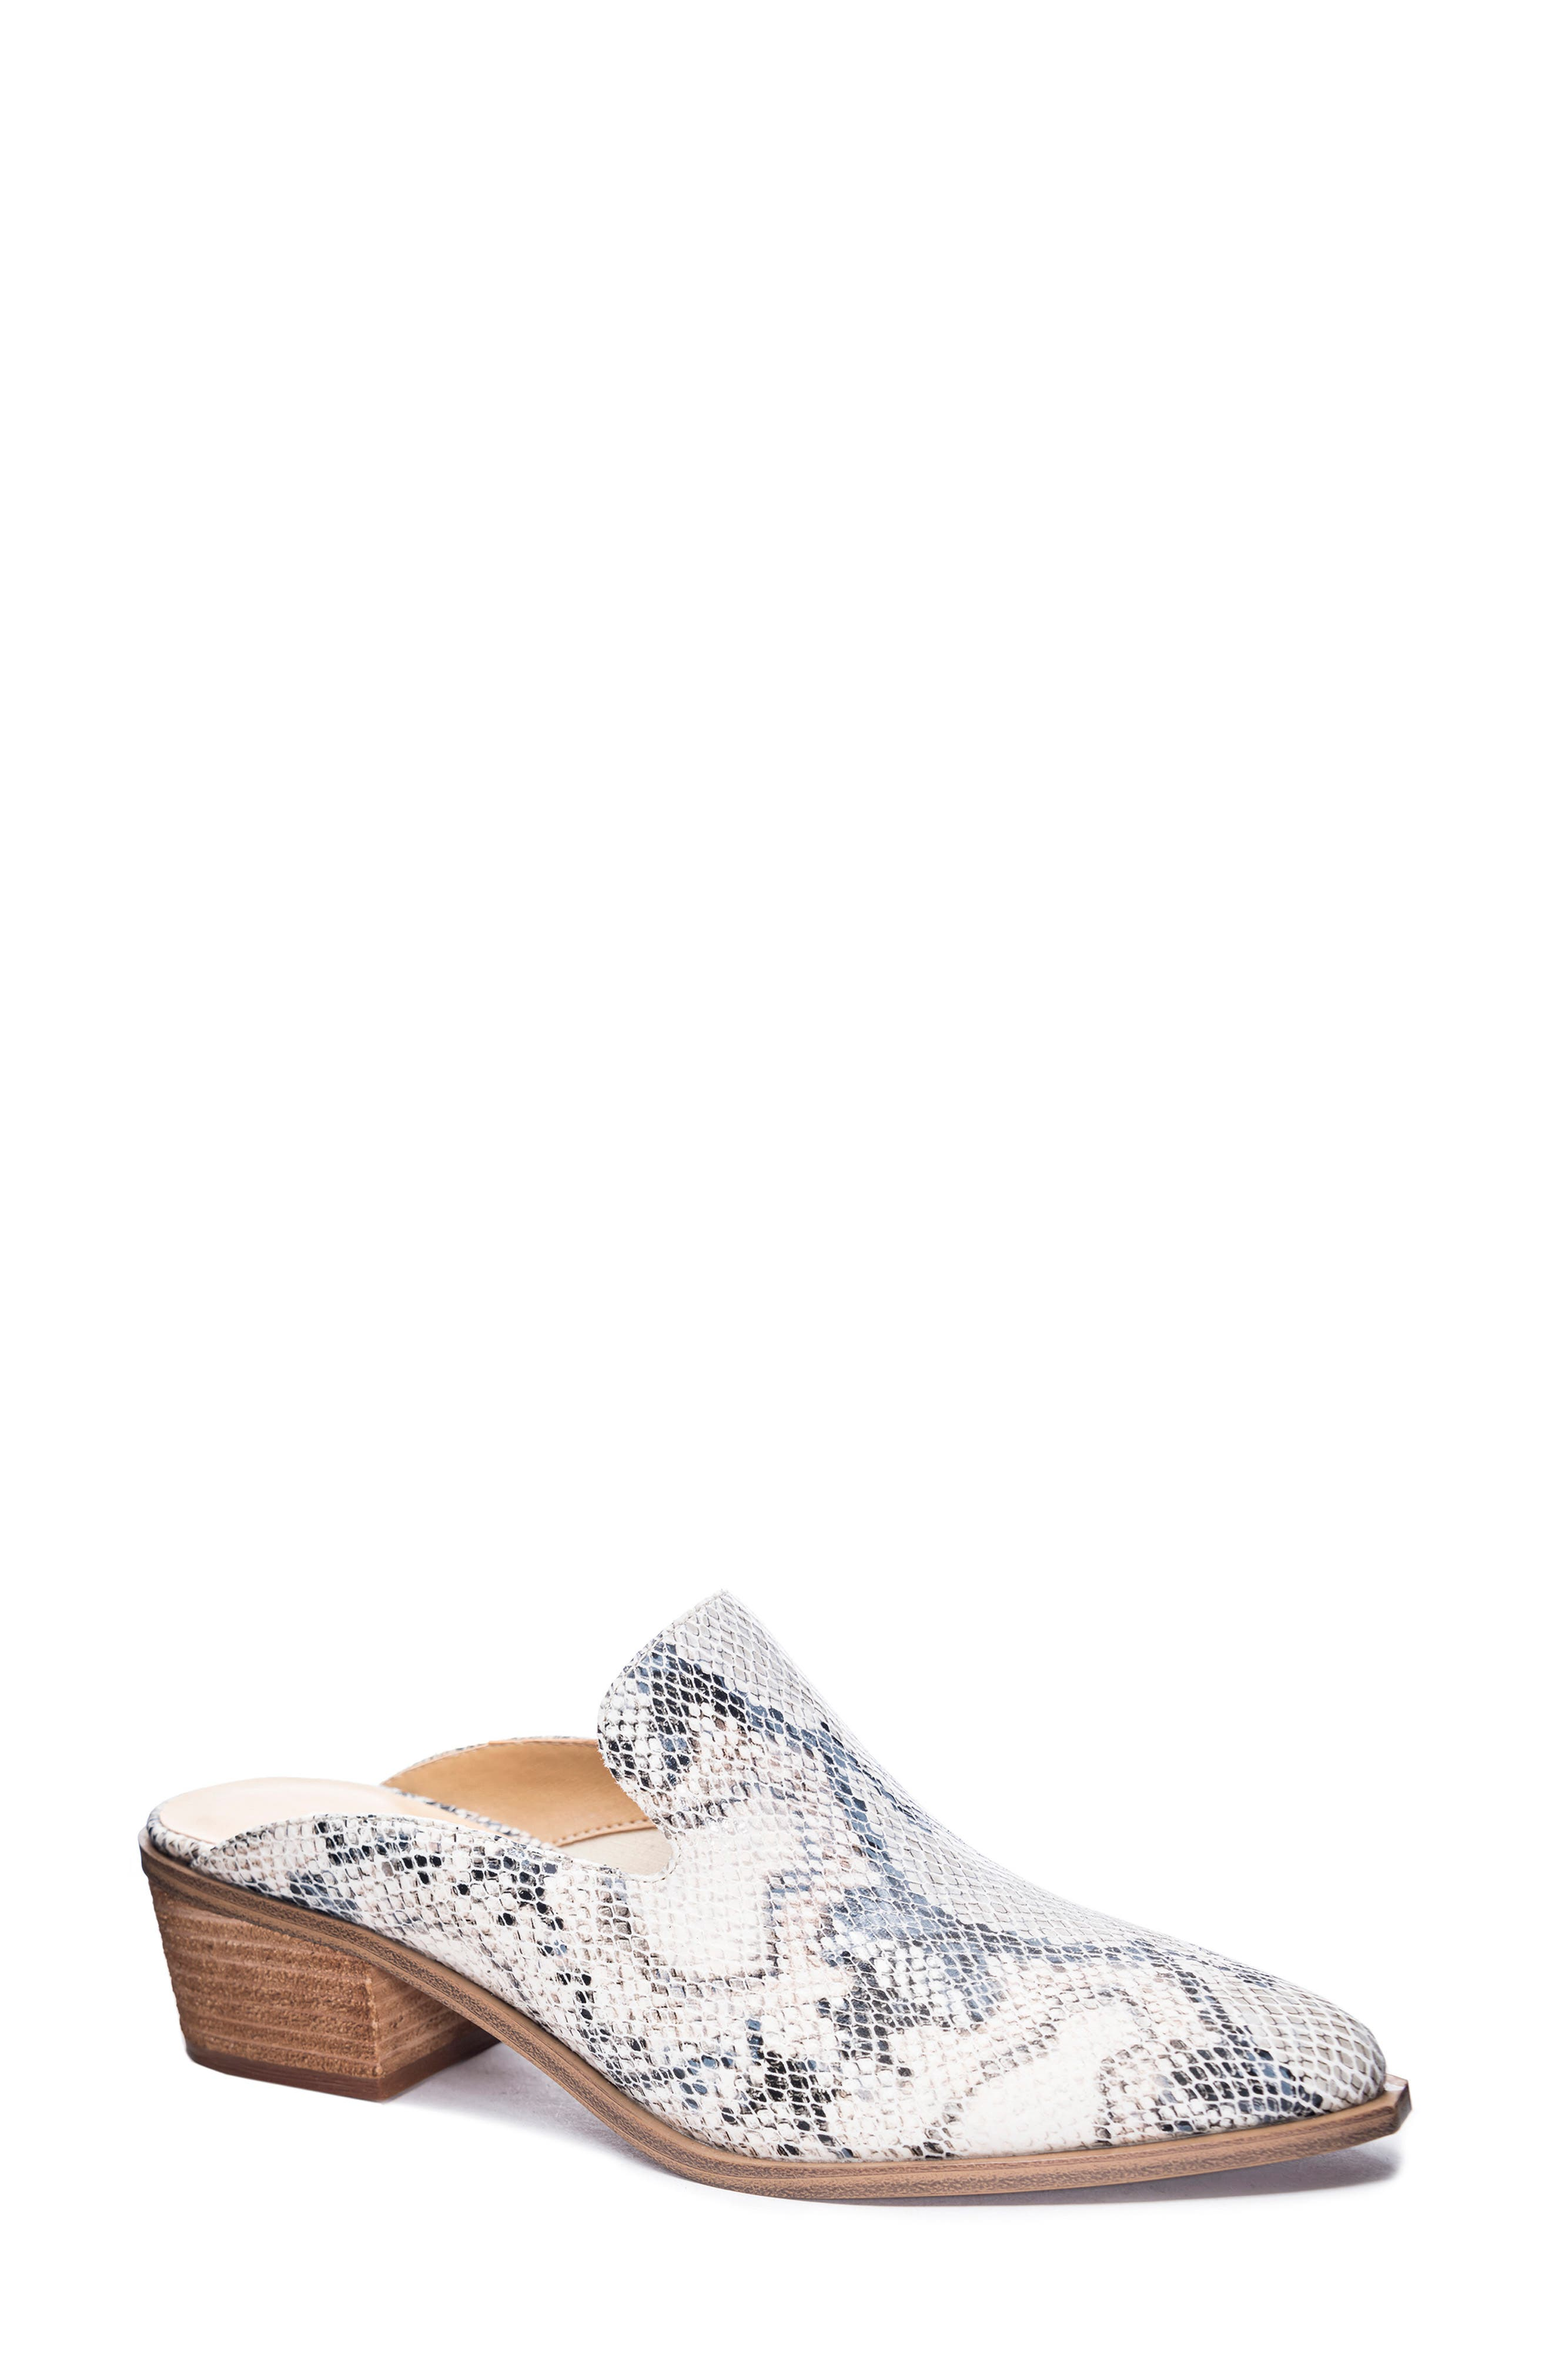 Marnie Loafer Mule